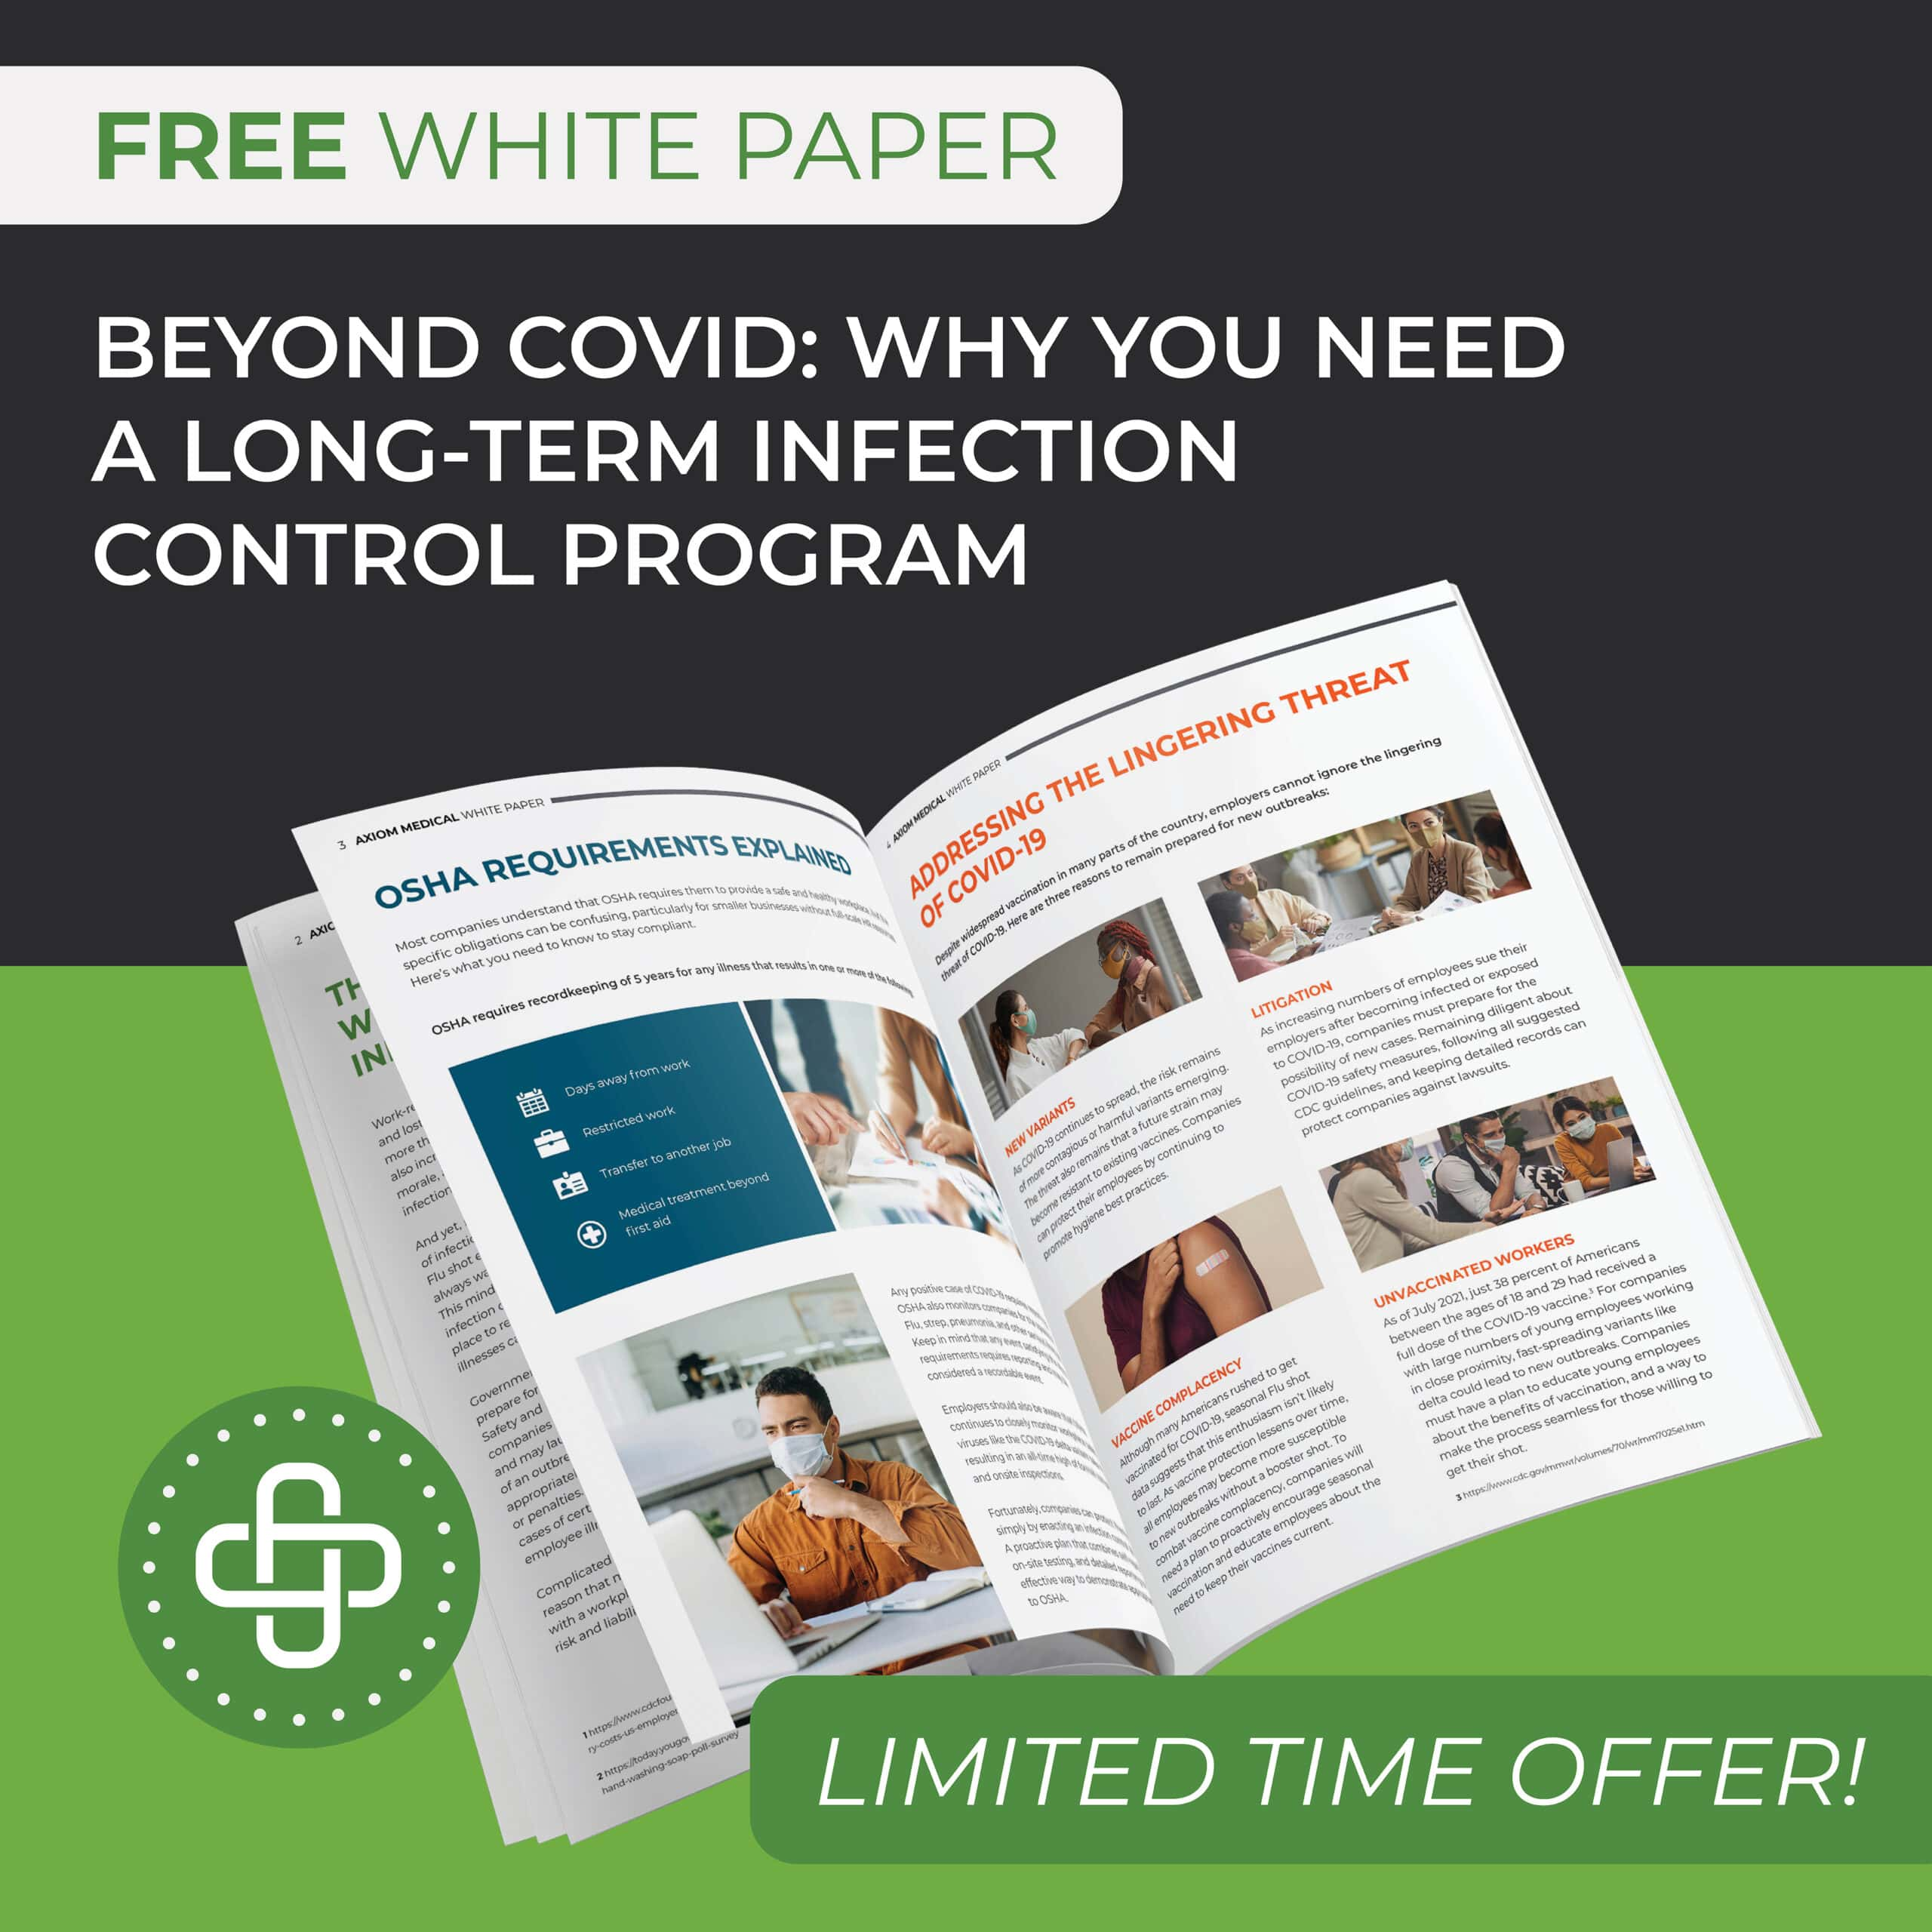 beyond-covid-infection control program